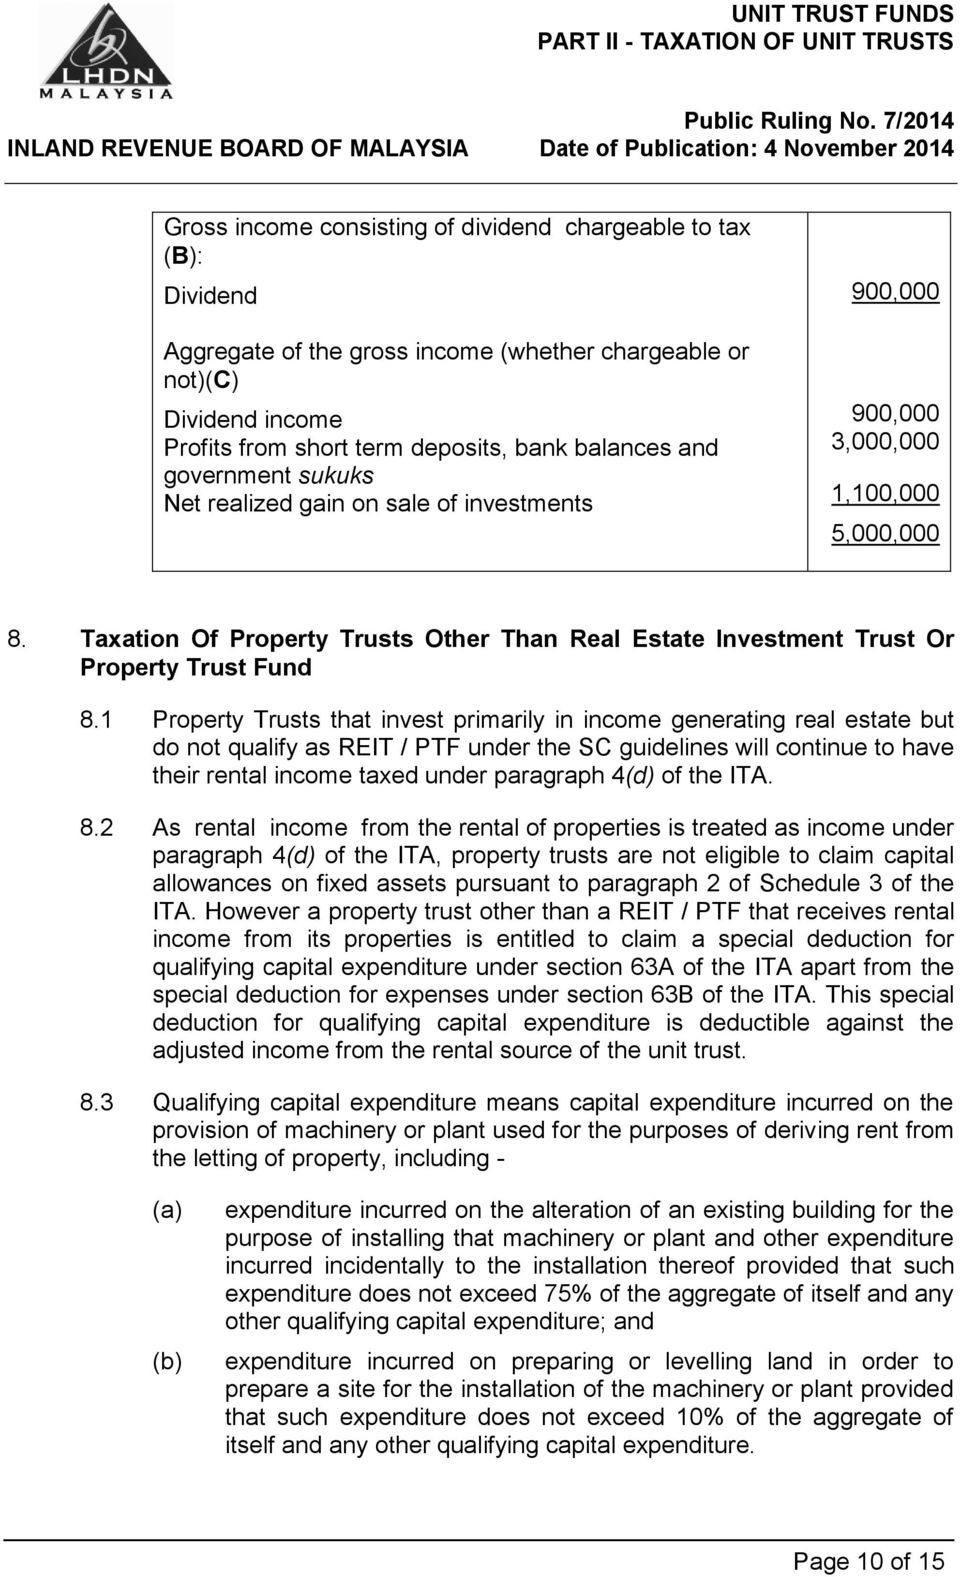 1 Property Trusts that invest primarily in income generating real estate but do not qualify as REIT / PTF under the SC guidelines will continue to have their rental income taxed under paragraph 4(d)